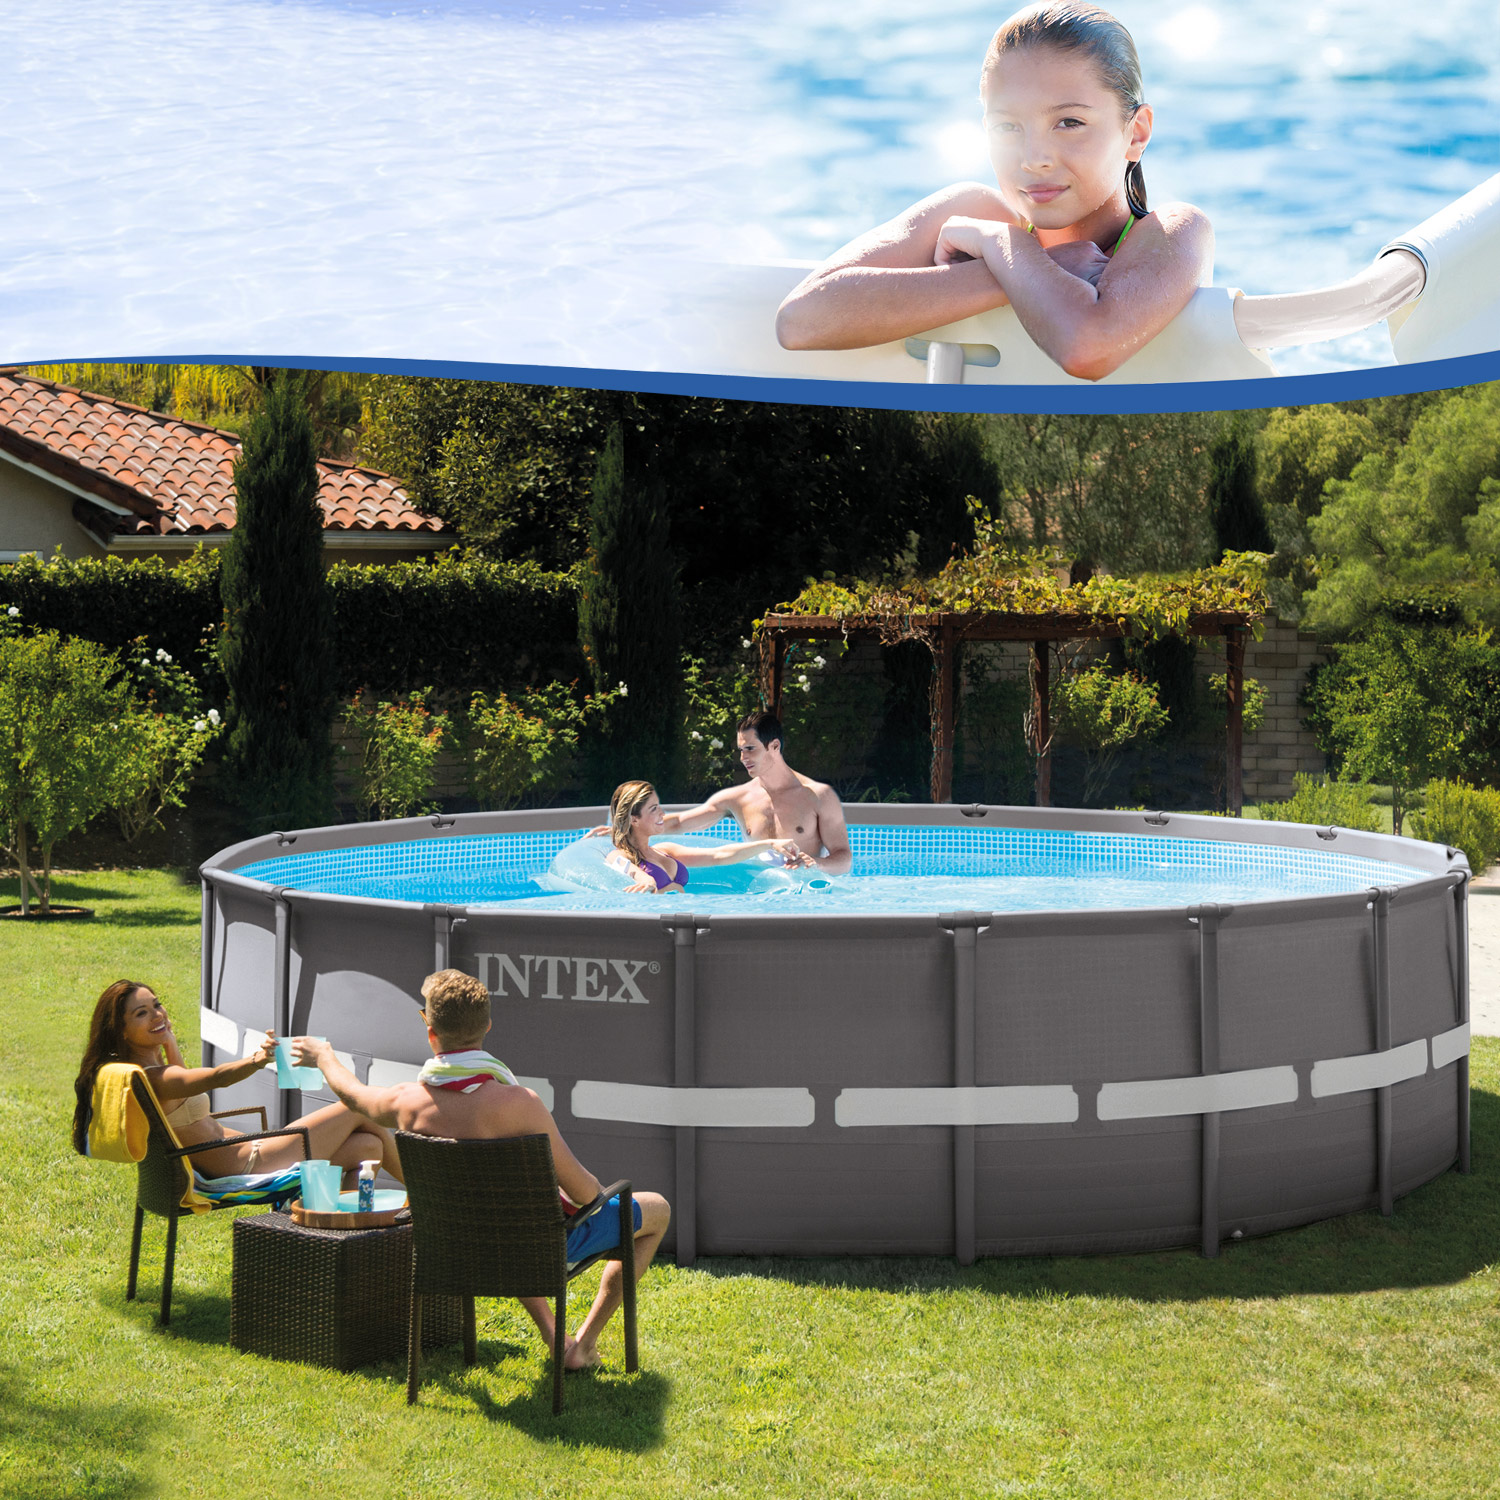 intex 488x132 set swimming pool frame stahlwandbecken schwimmbecken schwimmbad ebay. Black Bedroom Furniture Sets. Home Design Ideas